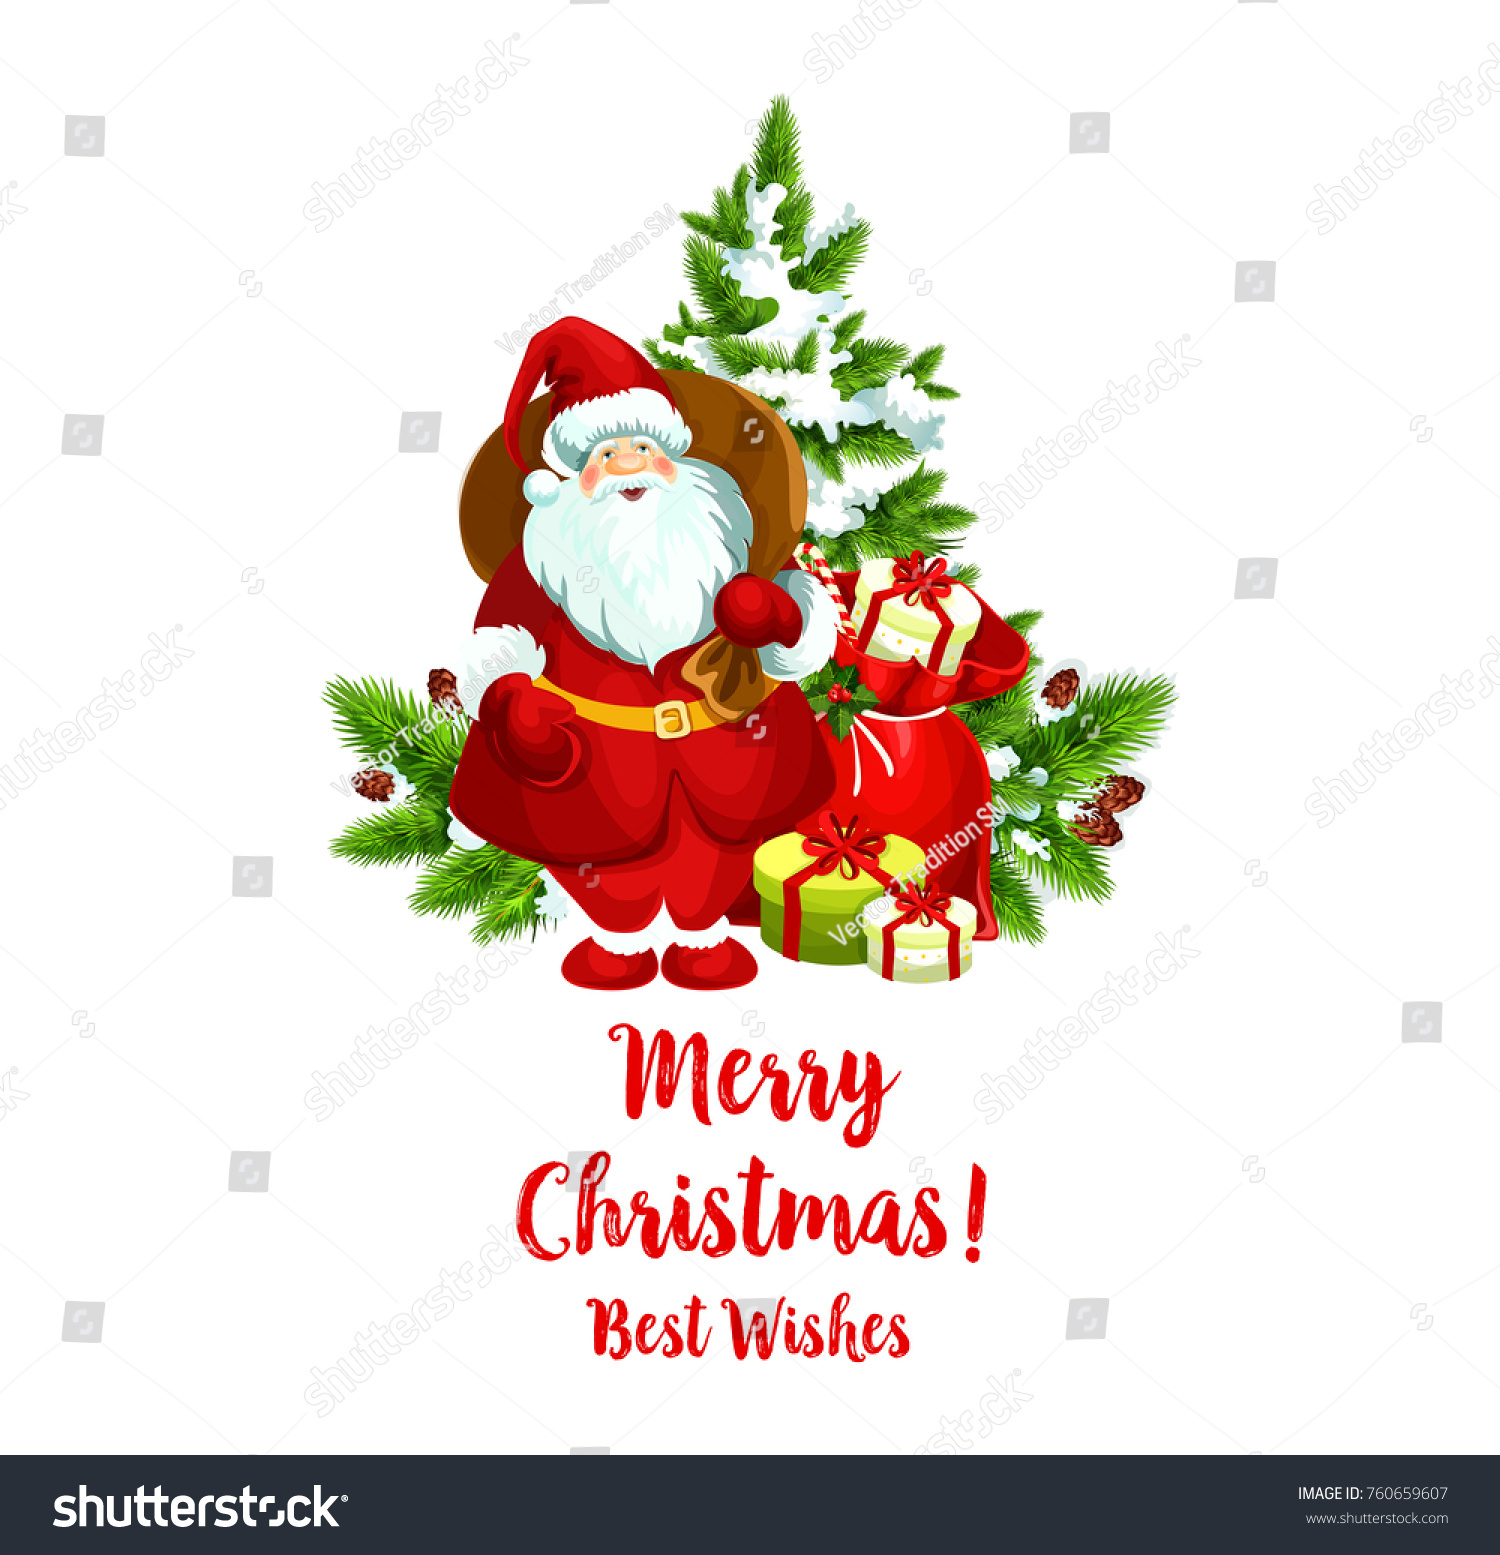 Merry Christmas Best Wishes Greeting Icon Stock Vector (Royalty Free ...